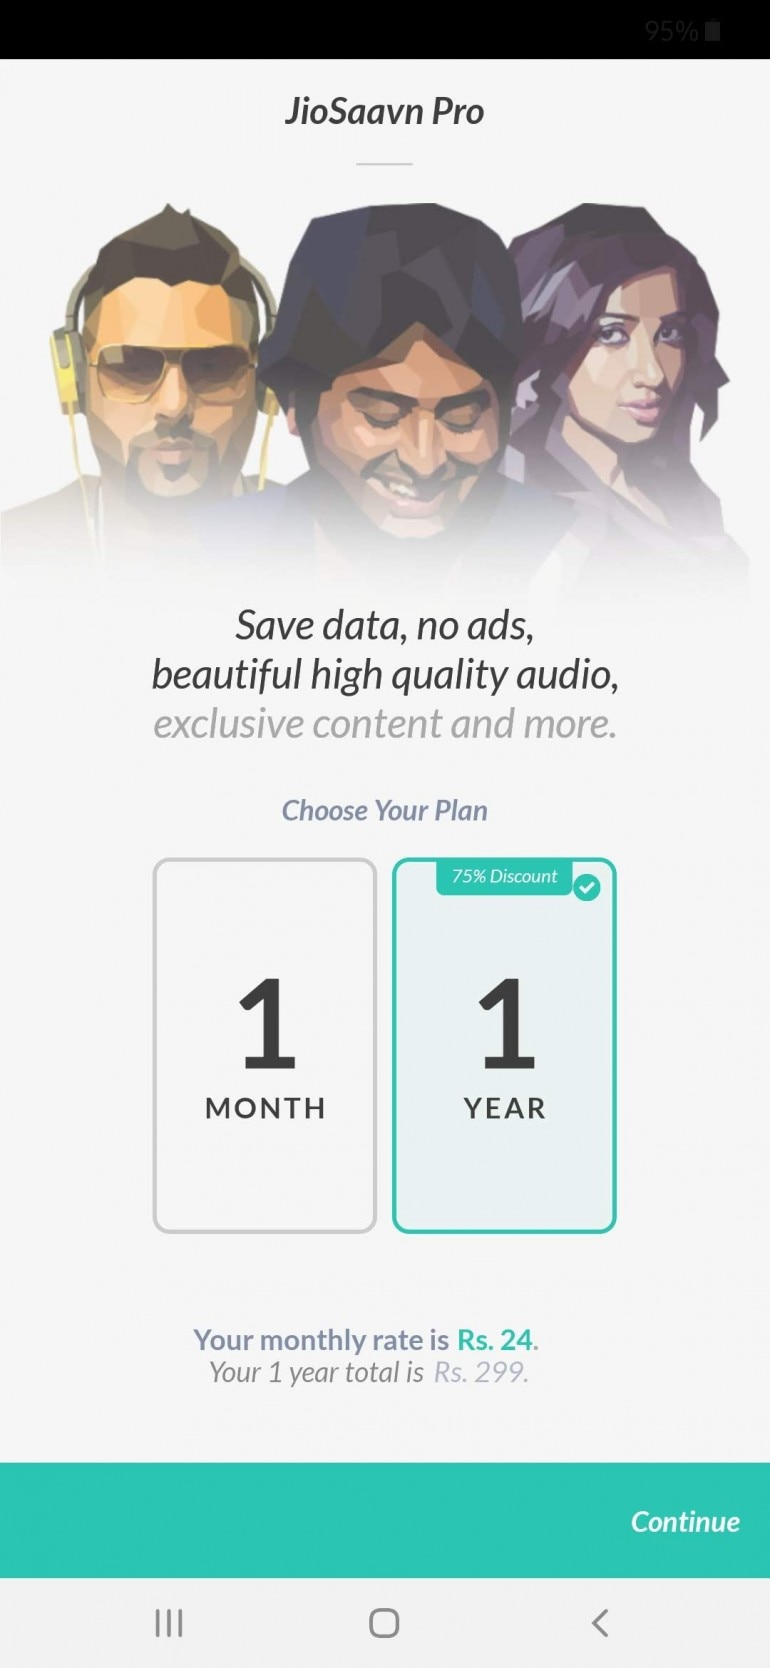 JioSaavn Pro now available with 75 per cent discount: Should